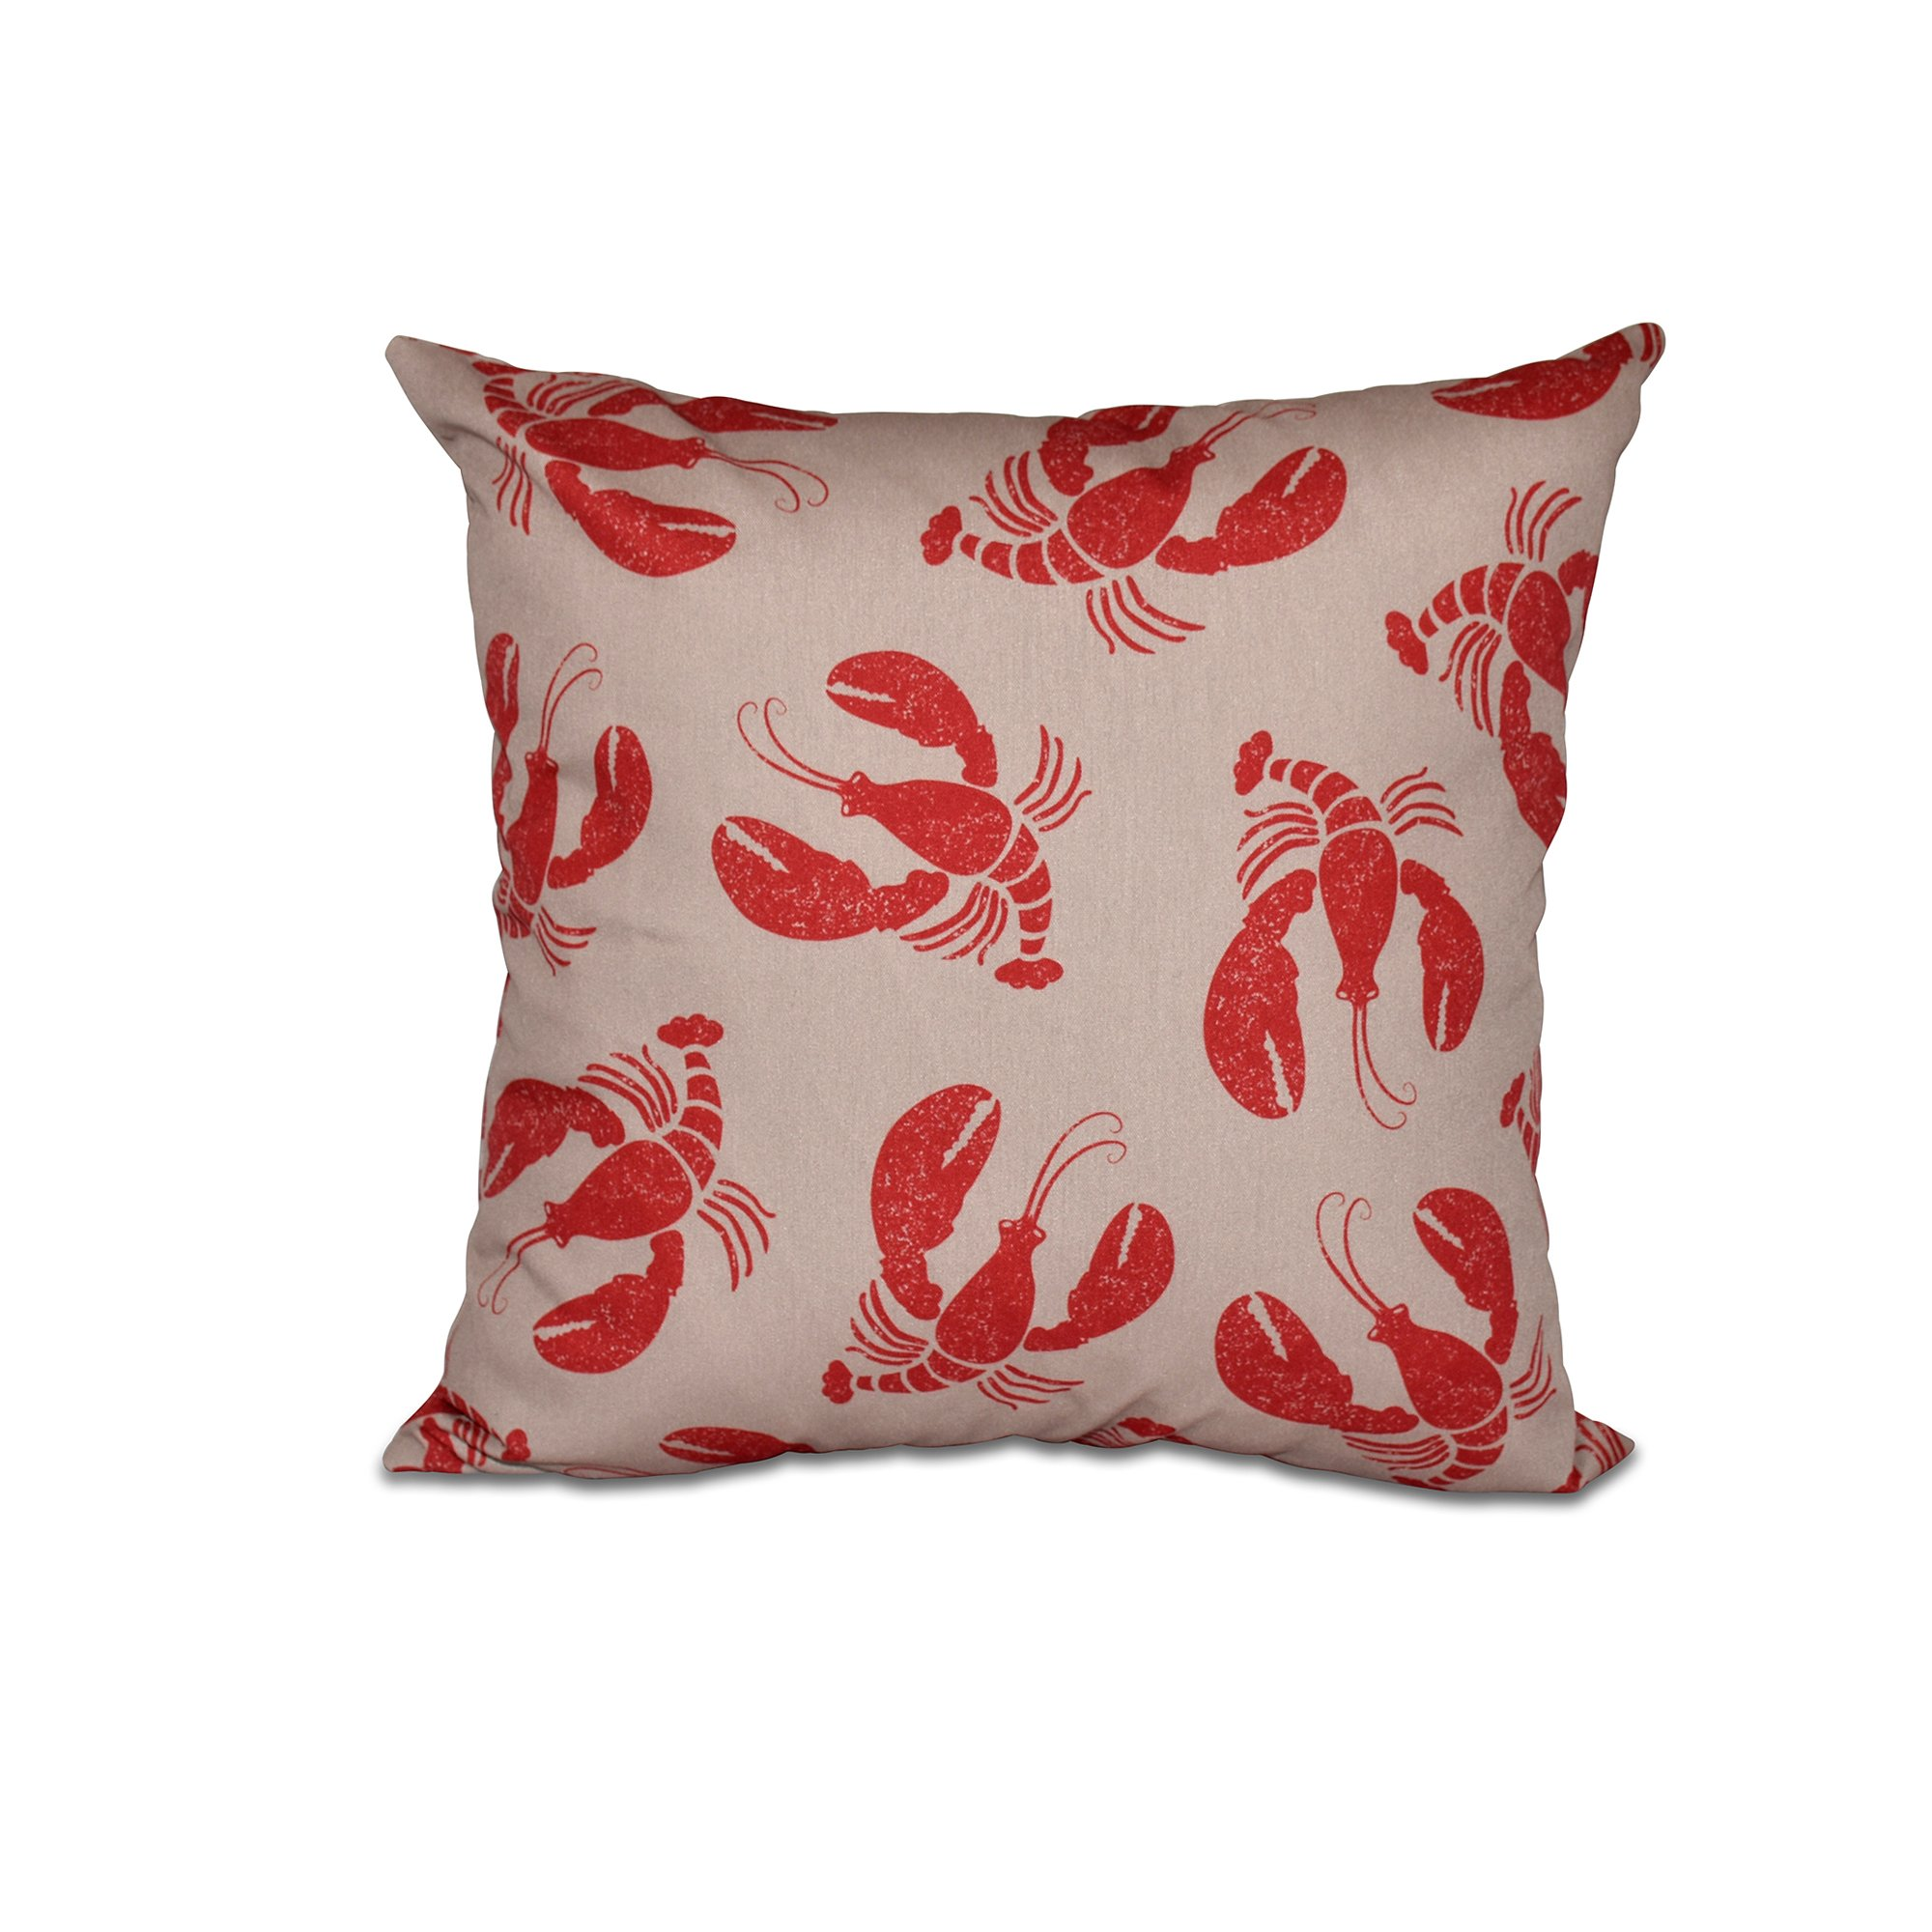 E by design O5PAN405TA8RE1-18 18'' x 18'' Lobster Fest Taupe/Beige Animal Print Outdoor Pillow